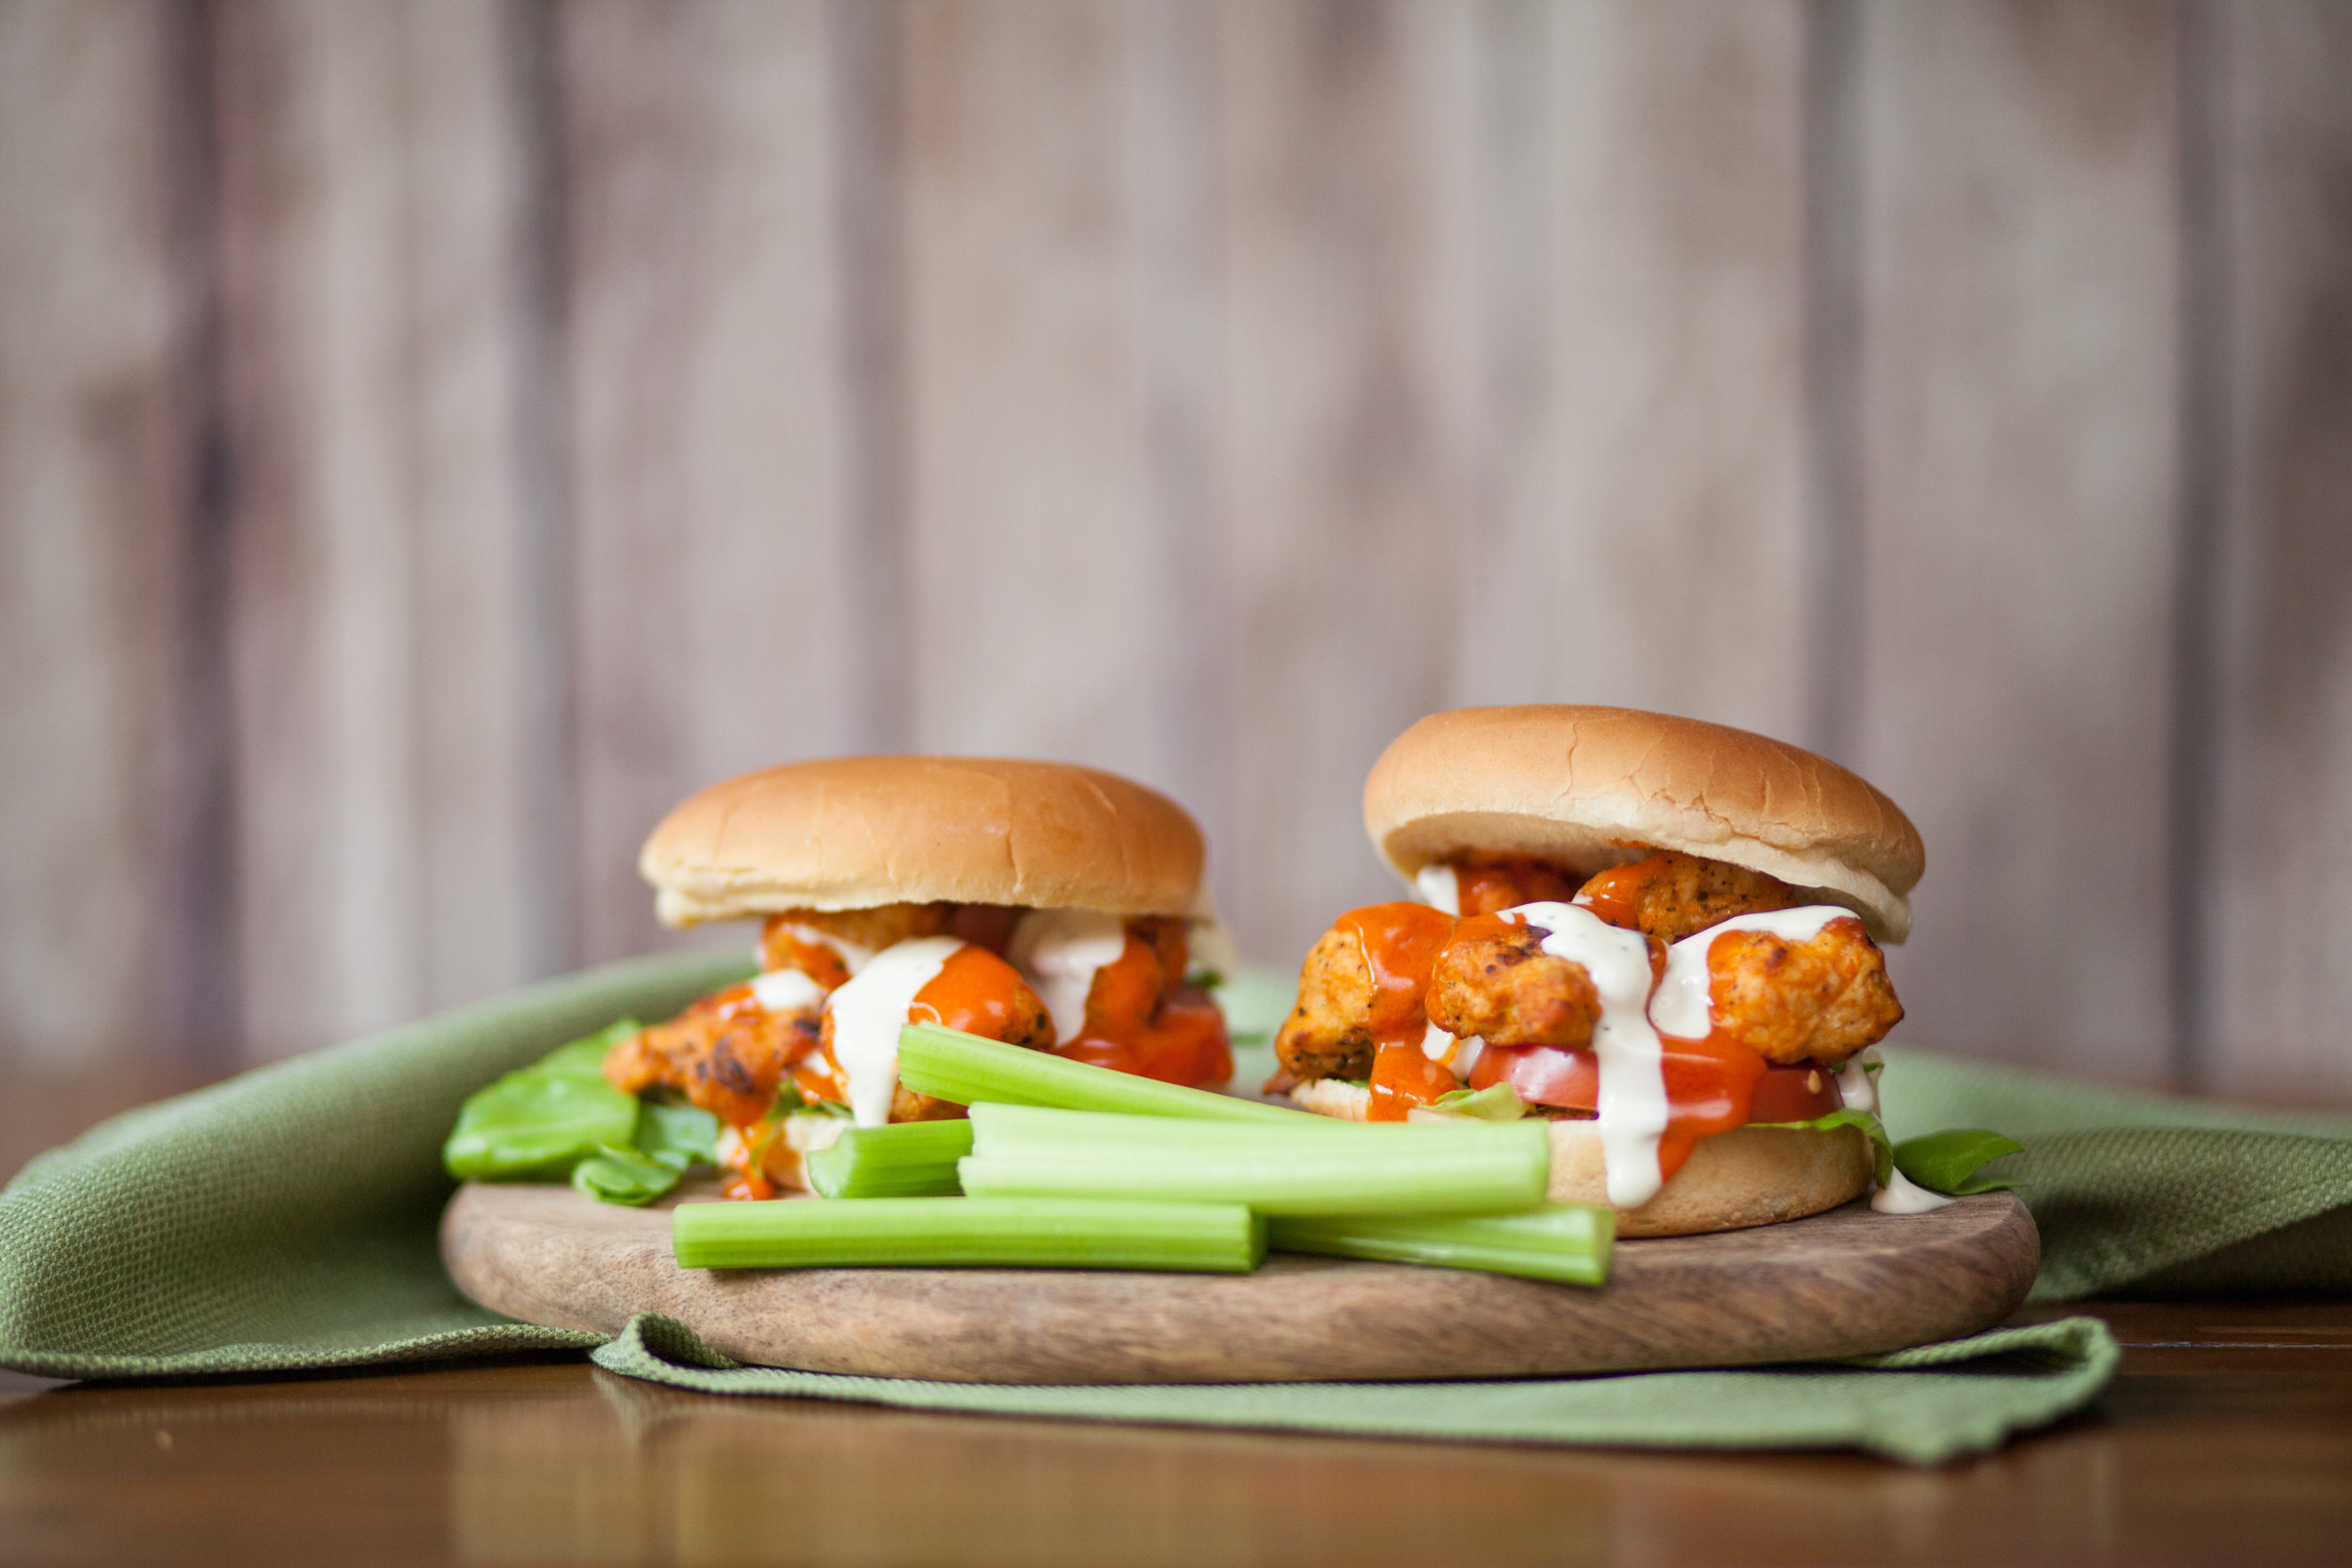 5. Buffalo Chicken Sandwiches - Who doesn't like a buffalo chicken sandwich? It's something that pretty much everyone agrees on and just is, like, the cool guy of sandwiches. We like ours on Johnsonville Stadium Honey Hamburger Buns for a little added sweetness.